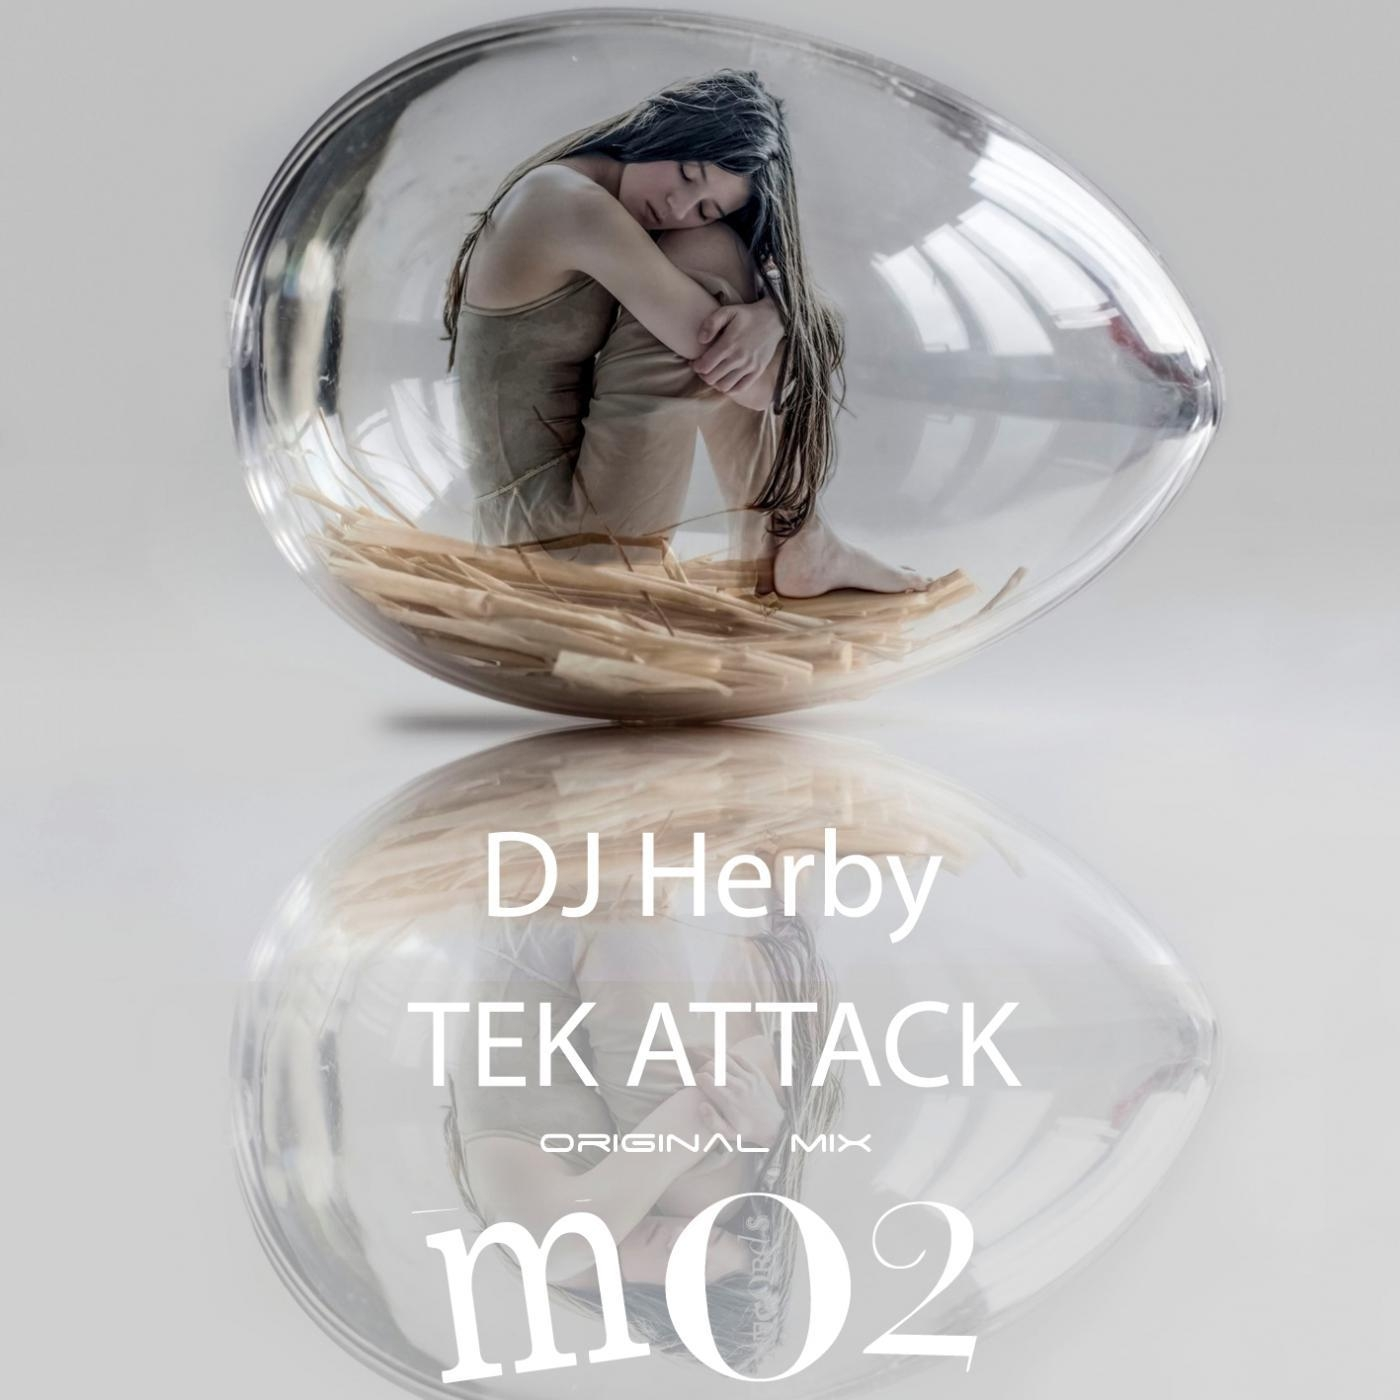 DJ Herby - Tek Attack (Original mix)